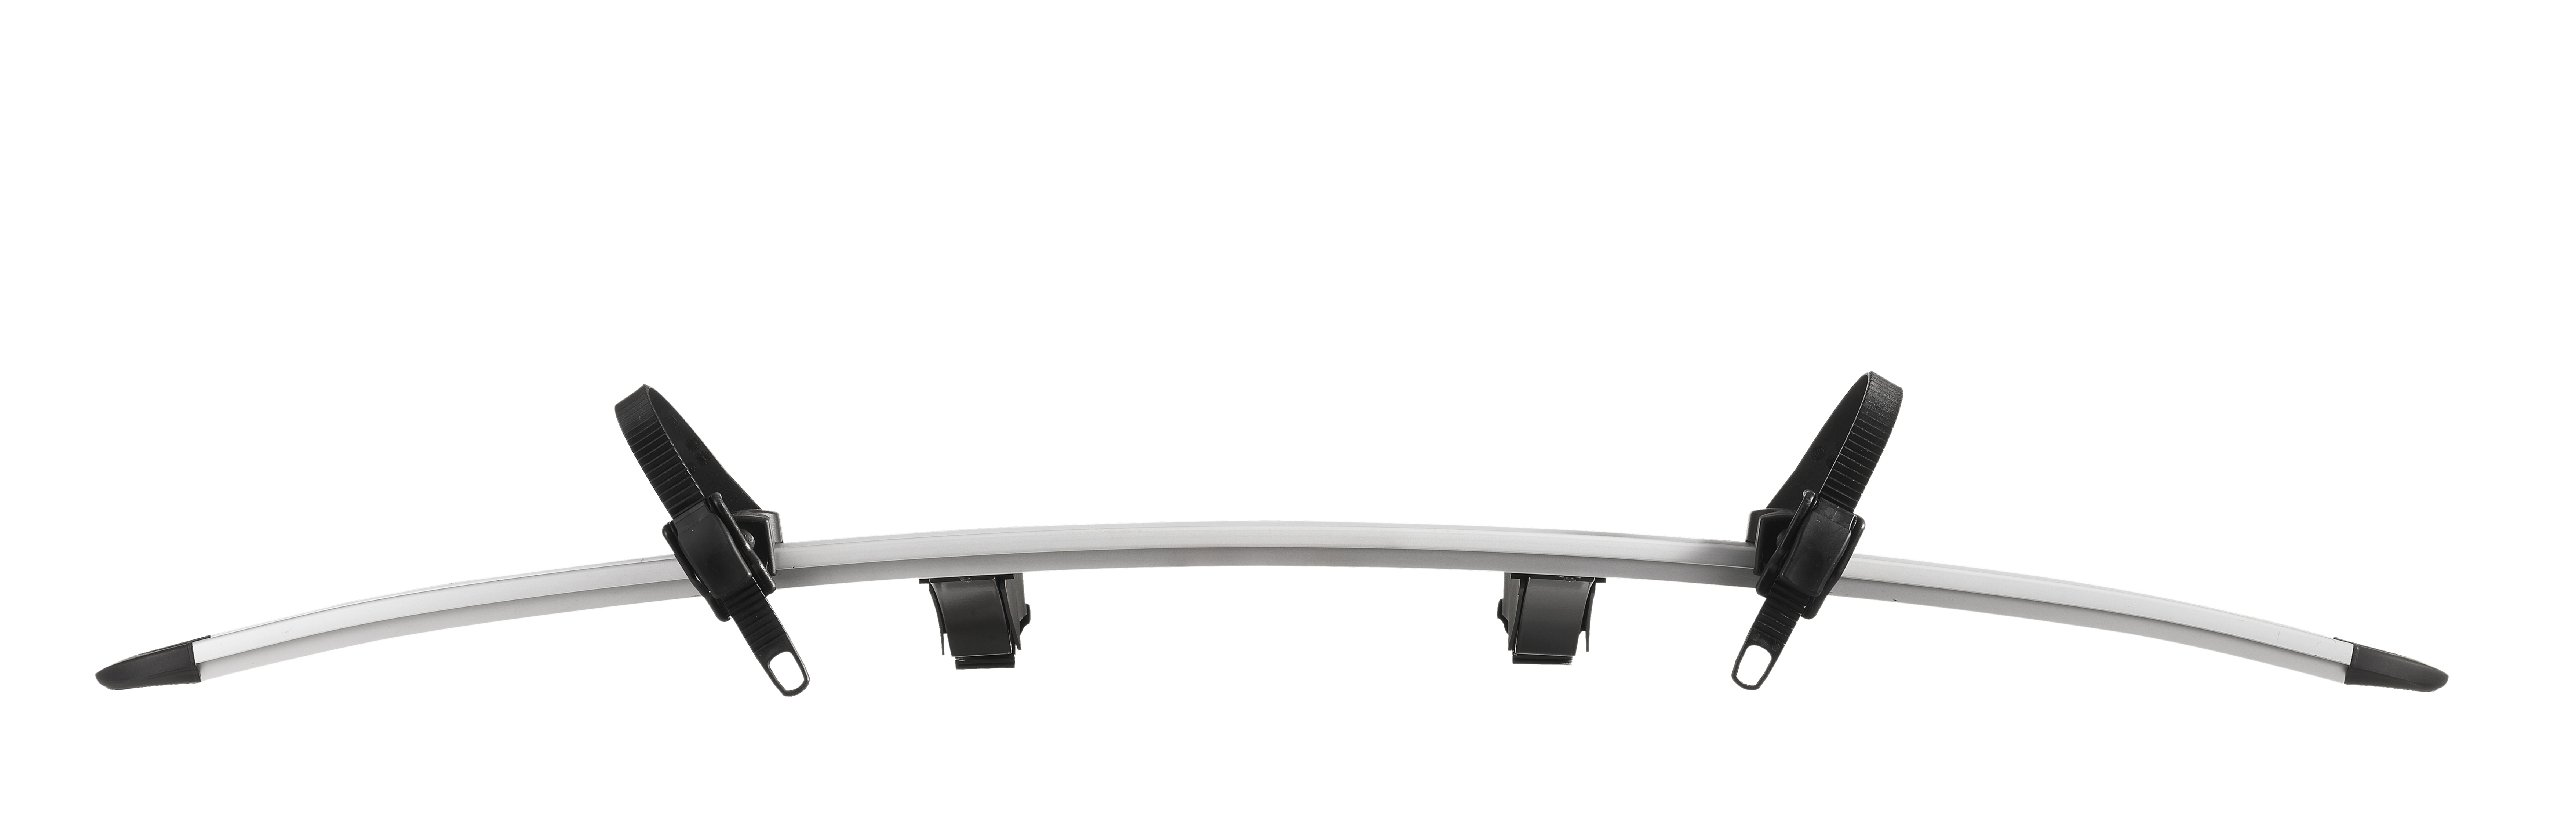 Thule 928120 Fahrradadapter EuroClassic (Altes Modell) product image